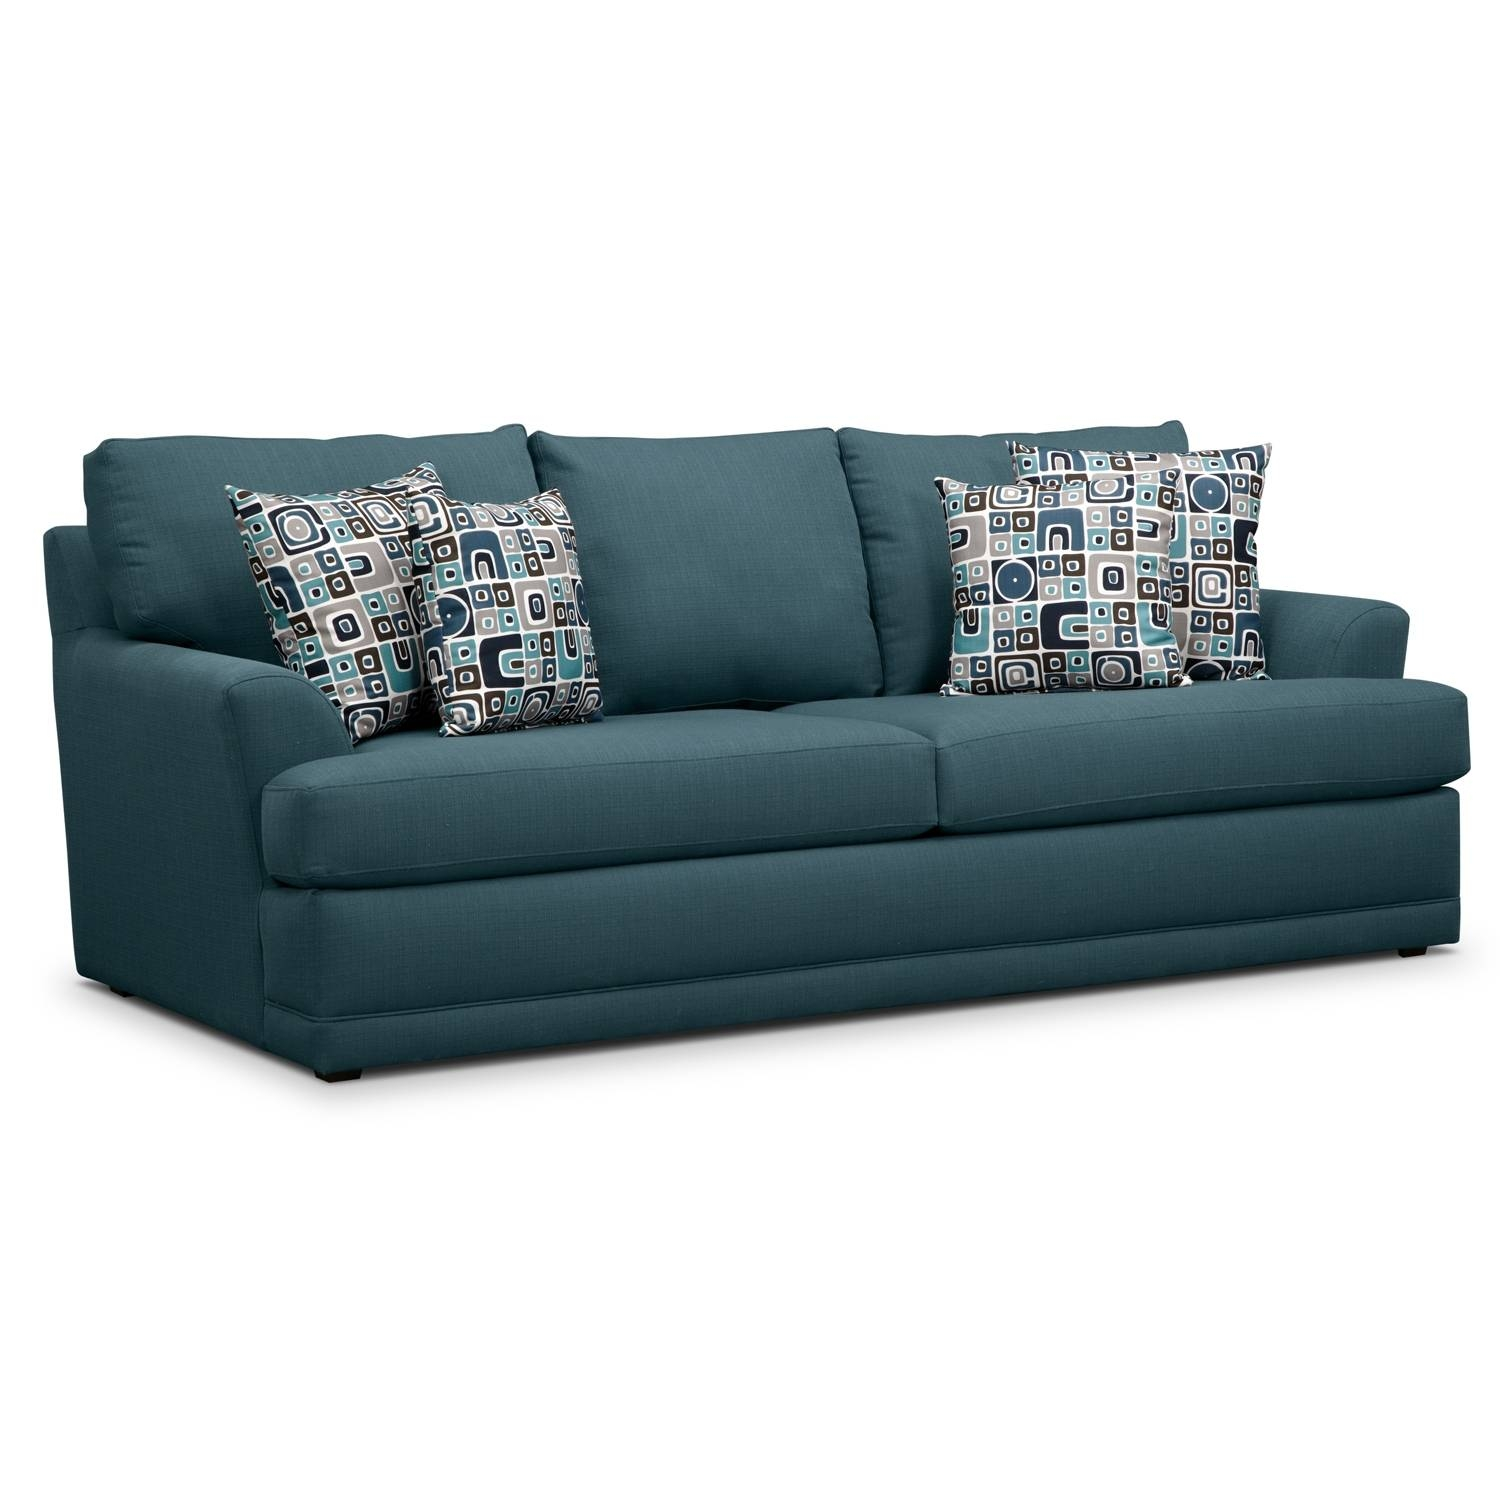 Perfect Value City Furniture Sofa Bed 15 For Castro Convertibles Inside City Sofa Beds (View 16 of 30)